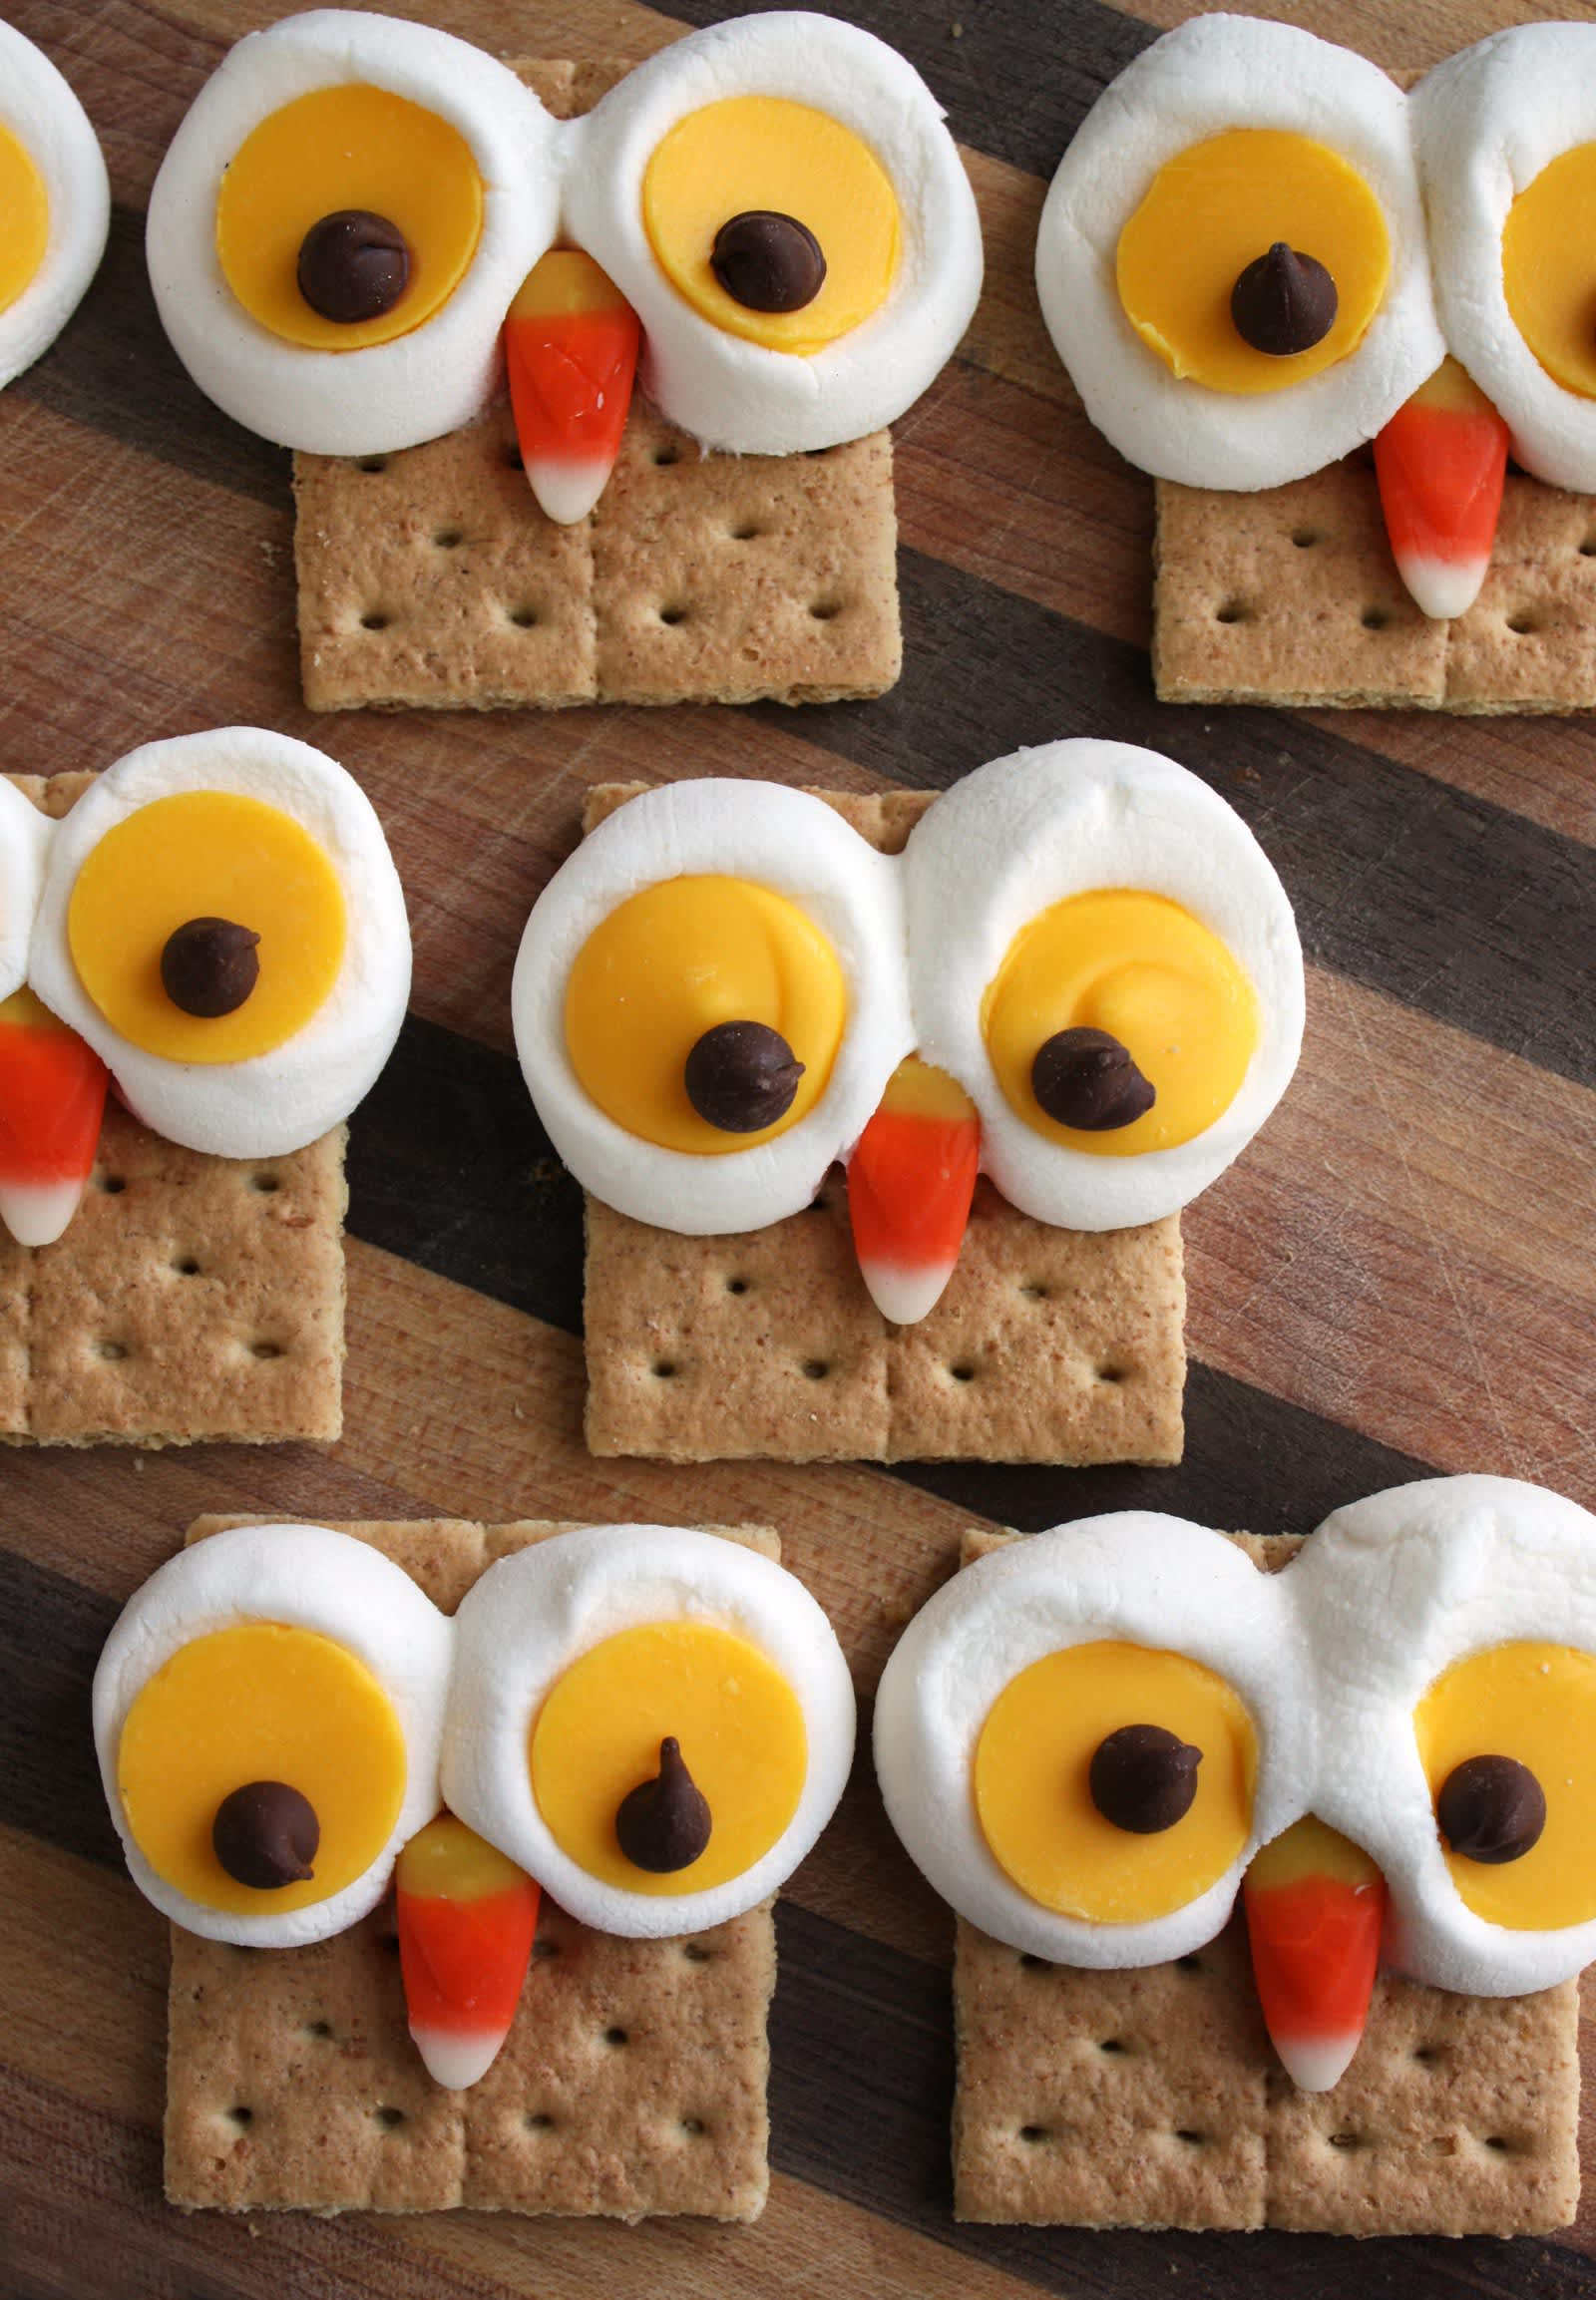 We Tried 7 Popular Halloween Recipes from Pinterest (So You Don't Have To): gallery image 7